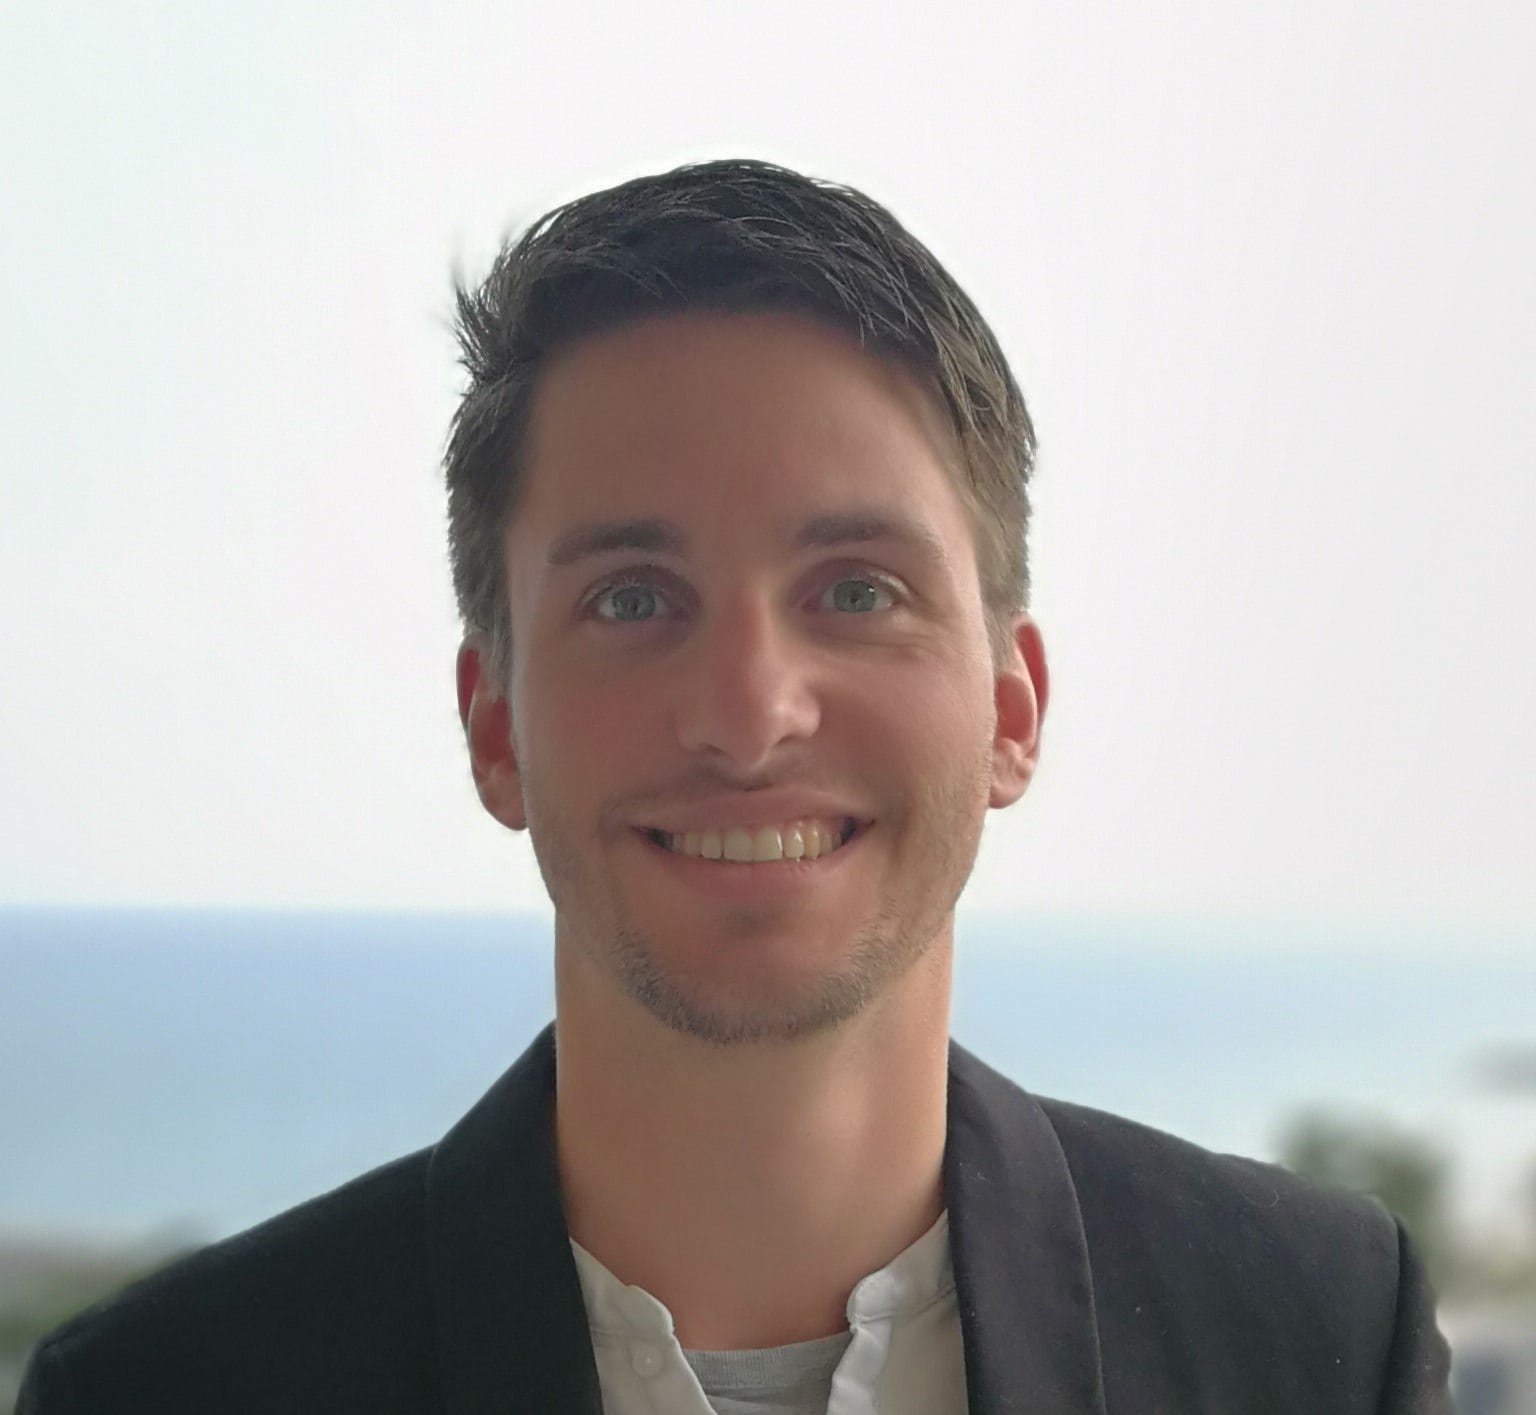 Creator of the FindFocus Website and Distraction Blocker